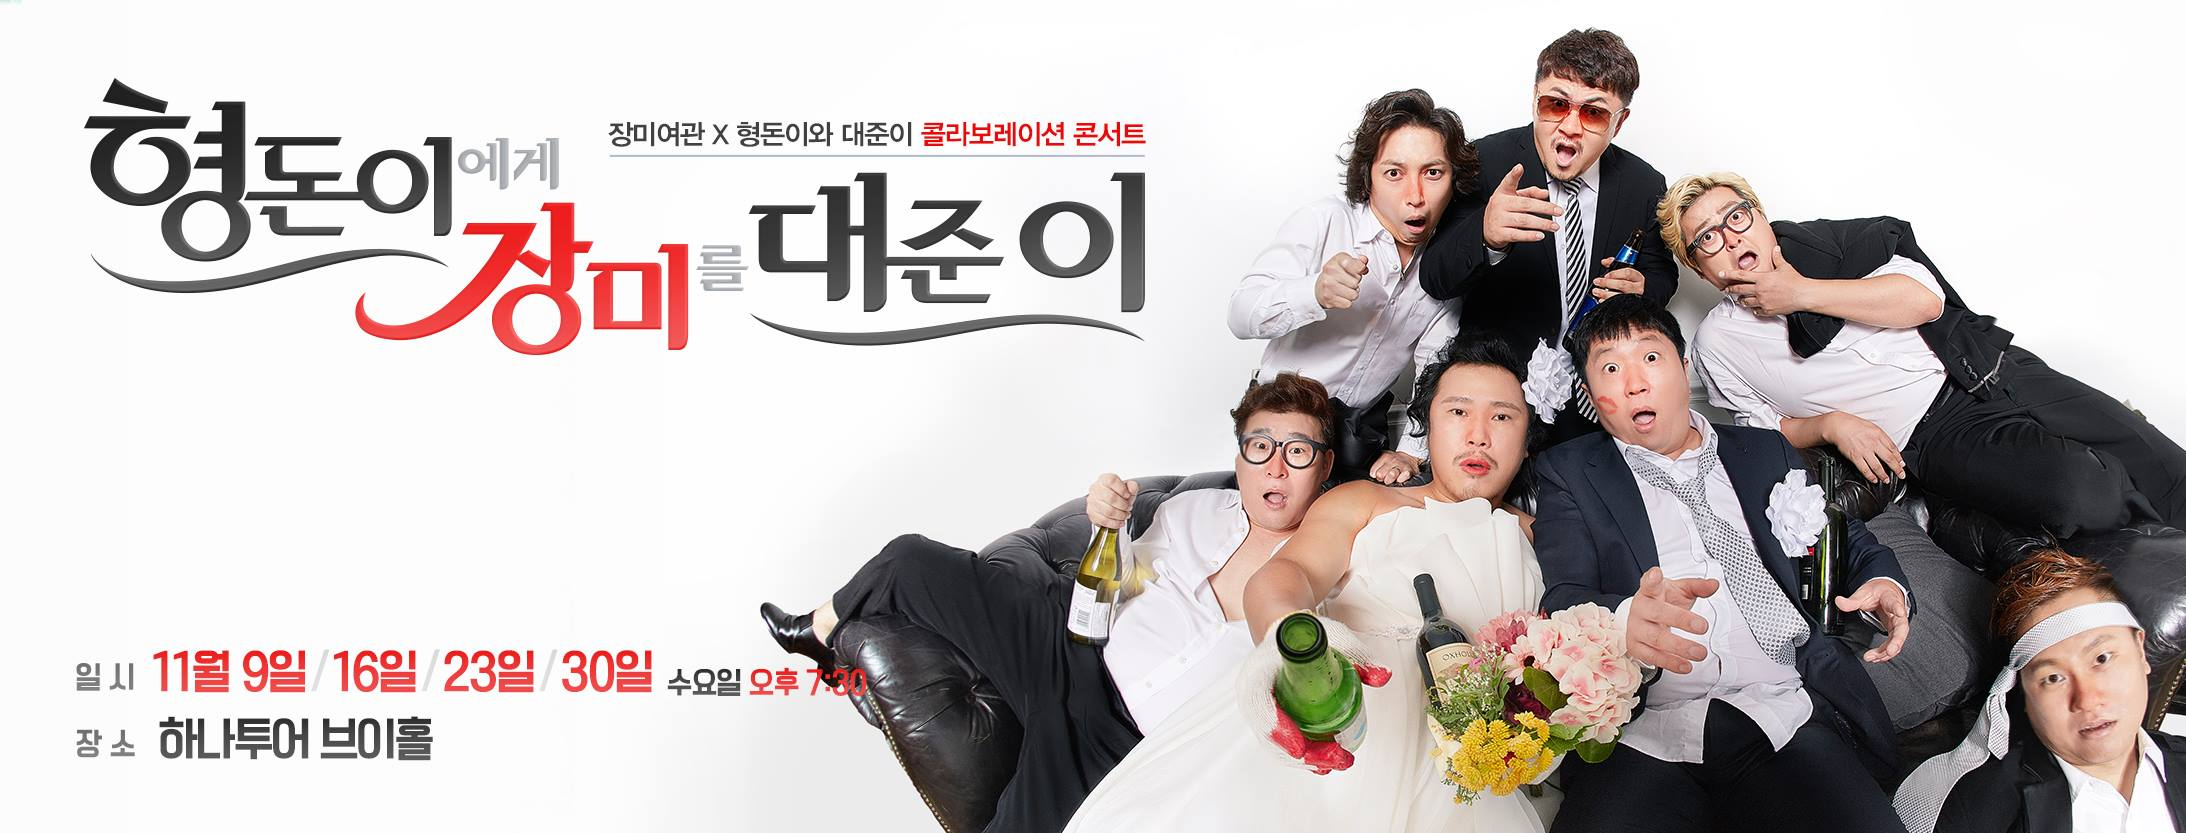 정형돈,데프콘,jung hyung don, Defconn, Rose motel Joint album concert poster